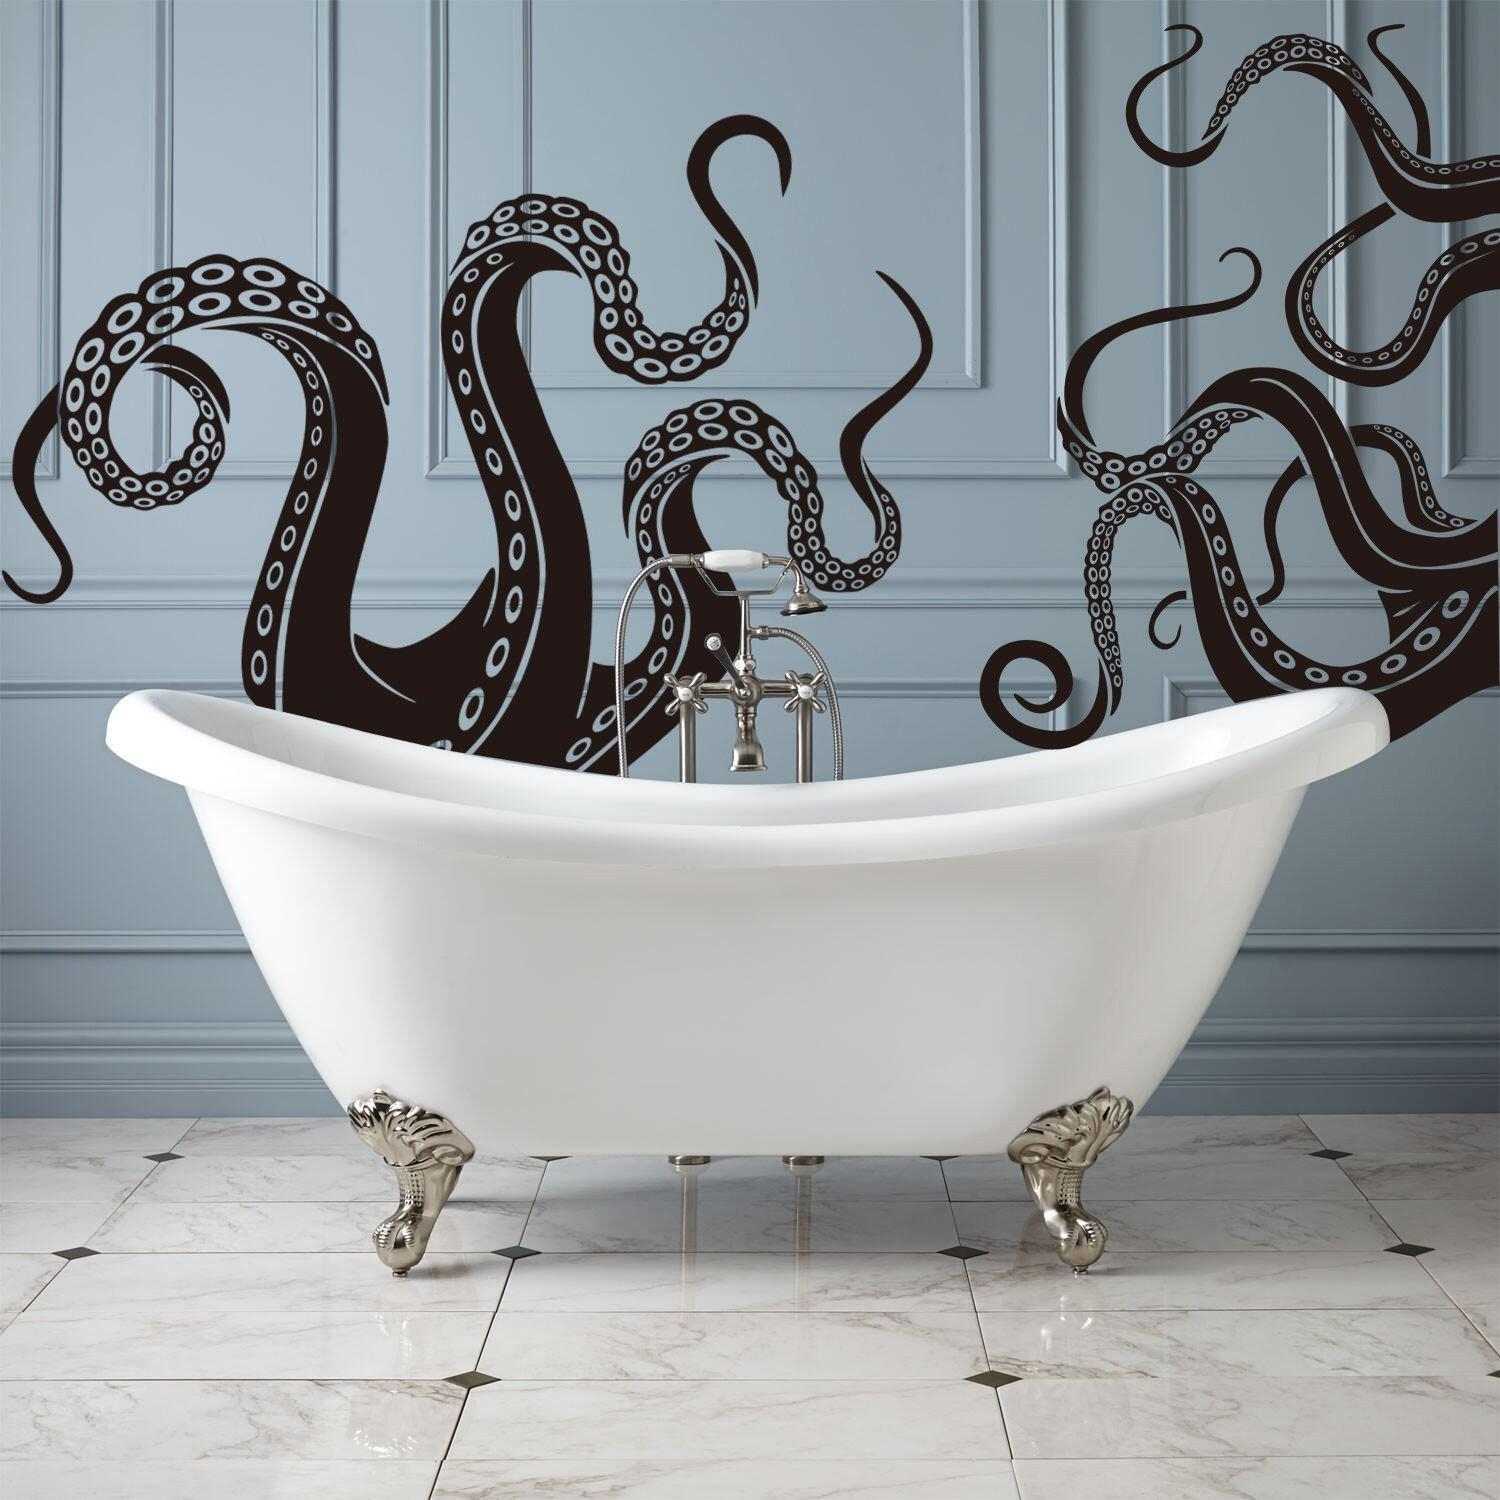 Octopus Tentacles Vinyl Wall Decal Sea Monster Sticker Kraken Pertaining To Octopus Tentacle Wall Art (Image 14 of 20)